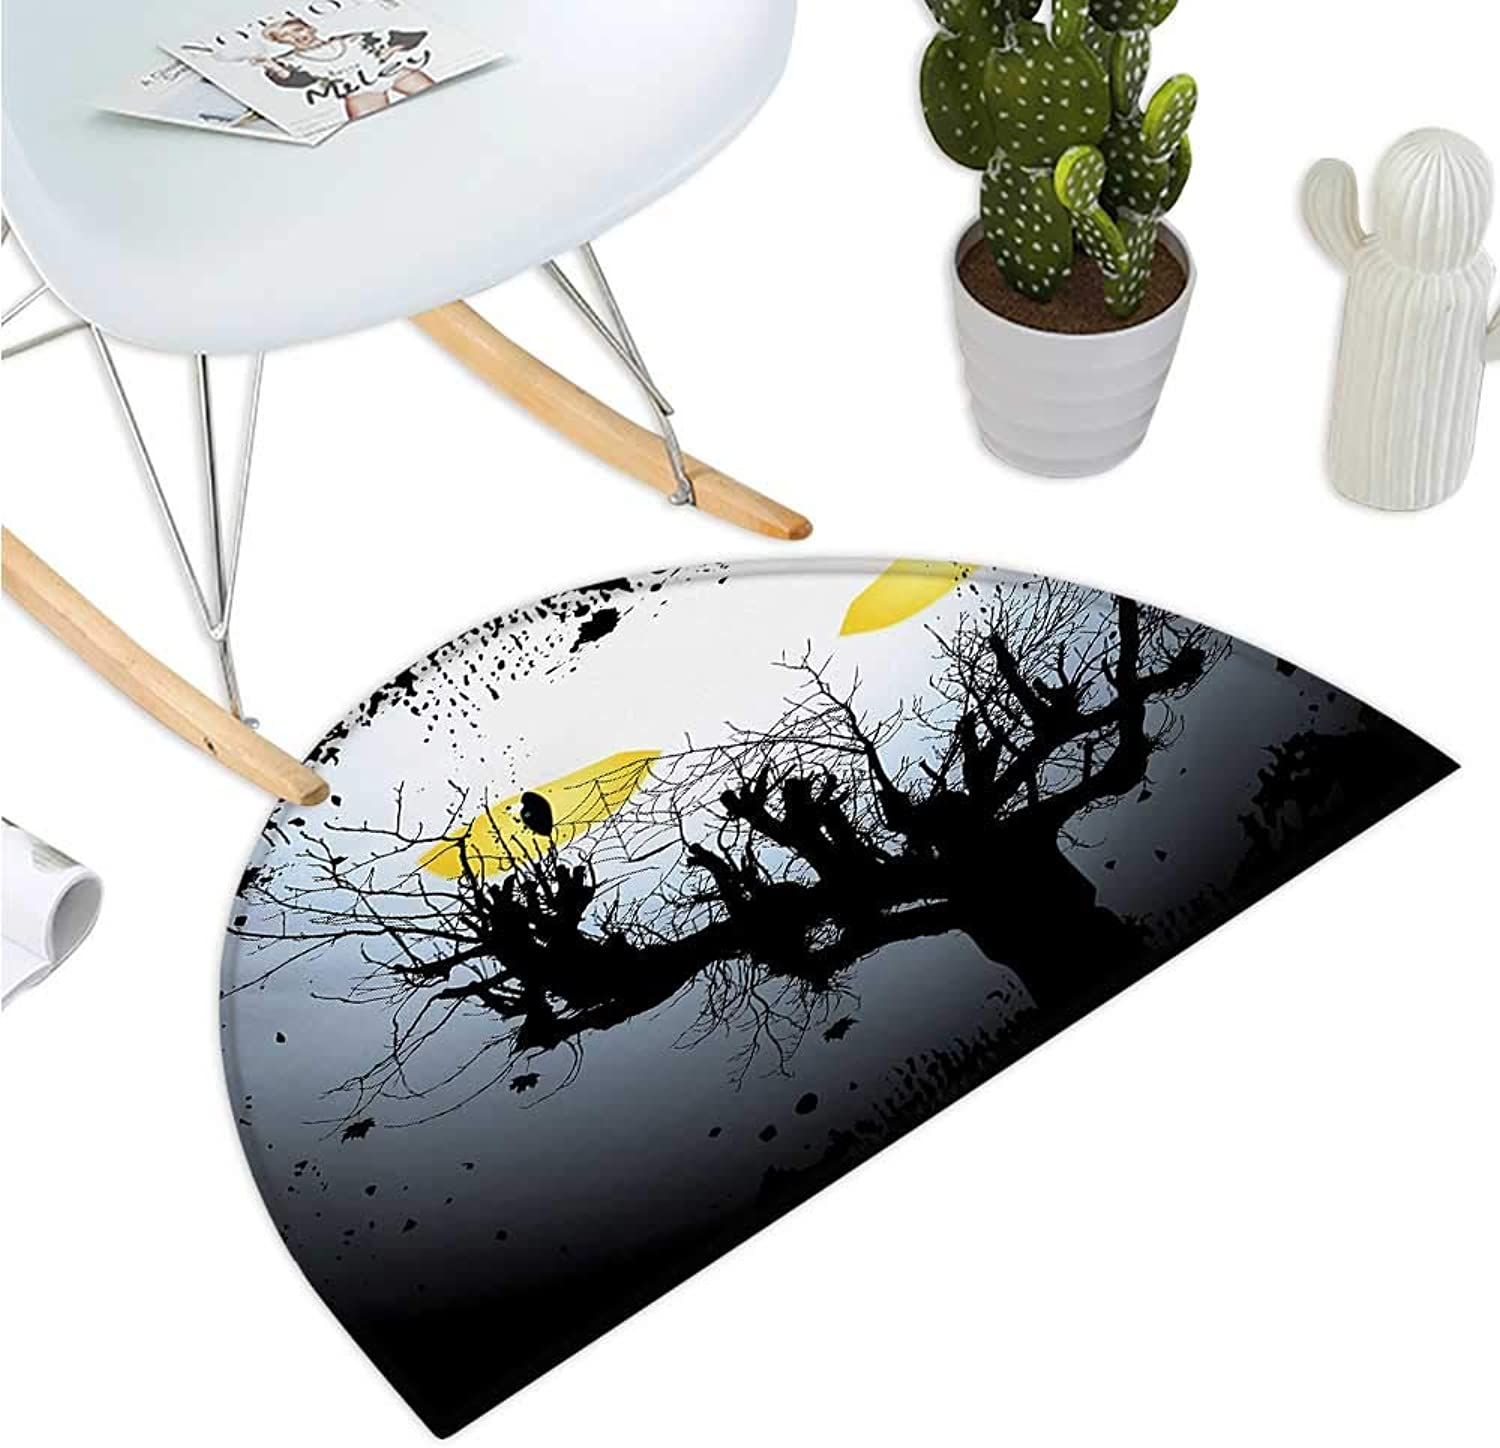 Horror House Semicircular Cushion Scary Eyes Backgrounded Leafless Old Branch Angry Hunt Cat Animal Creature Halfmoon doormats H 39.3  xD 59  Yellow Black